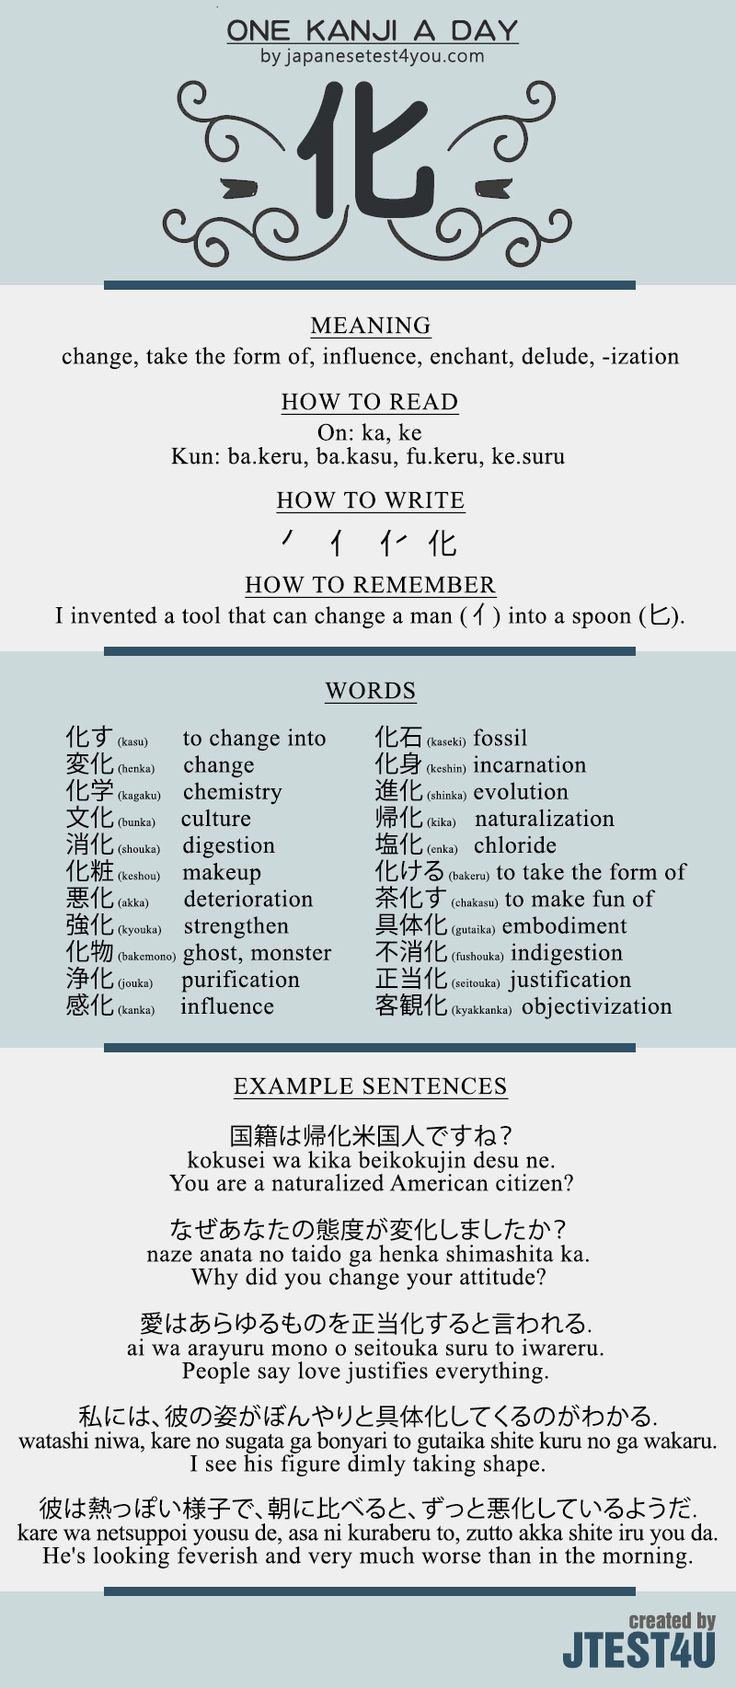 Learn one Kanji a day with infographic: 化: http://japanesetest4you.com/learn-one-kanji-a-day-with-infographic-%E5%8C%96-ka/